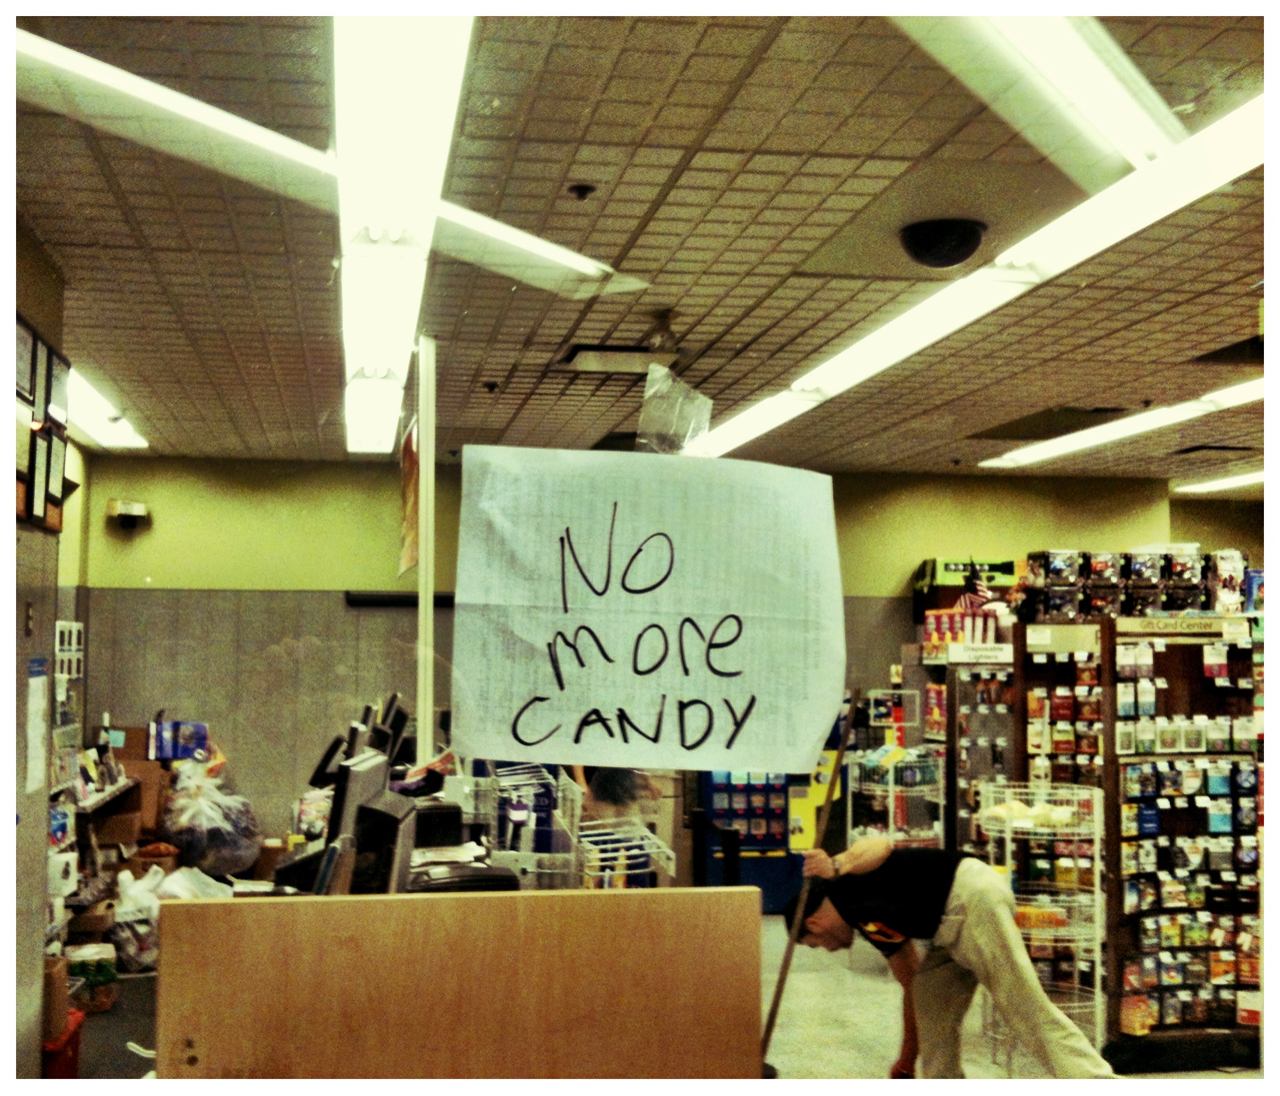 NO more CANDY